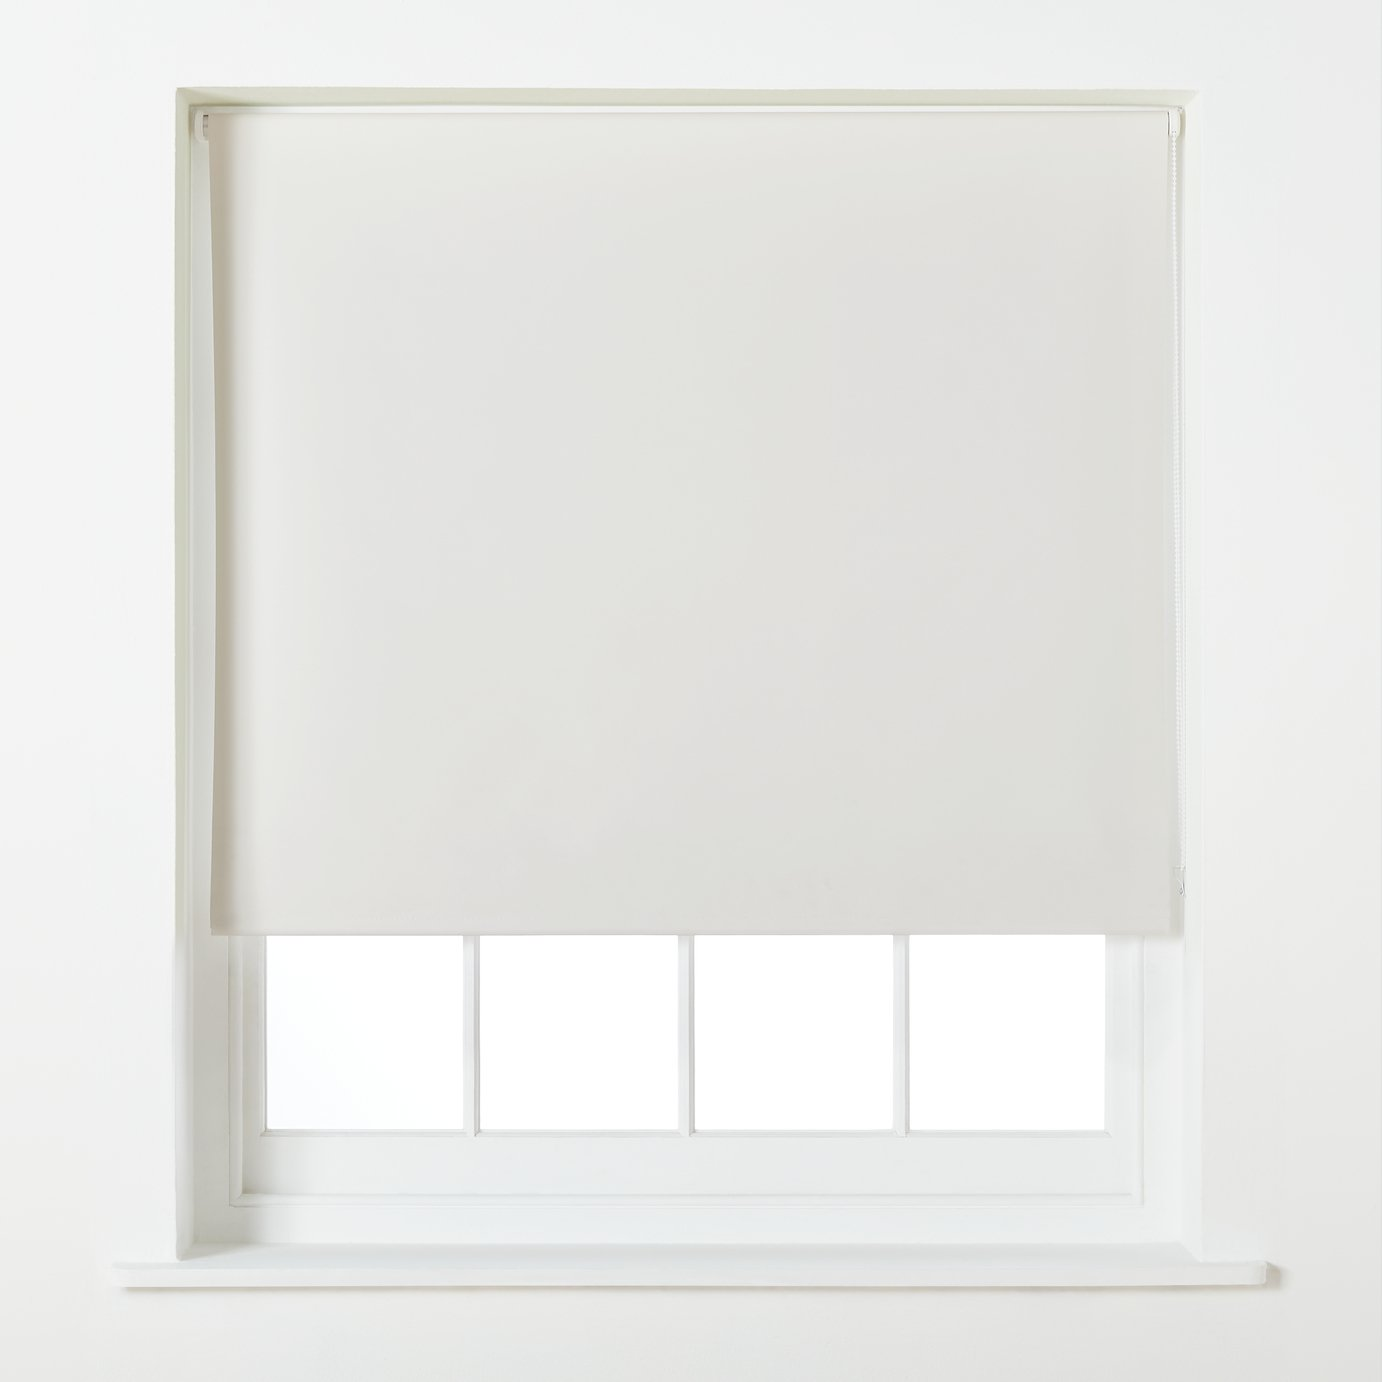 Argos Home Blackout Roller Blind - 2ft - Cream